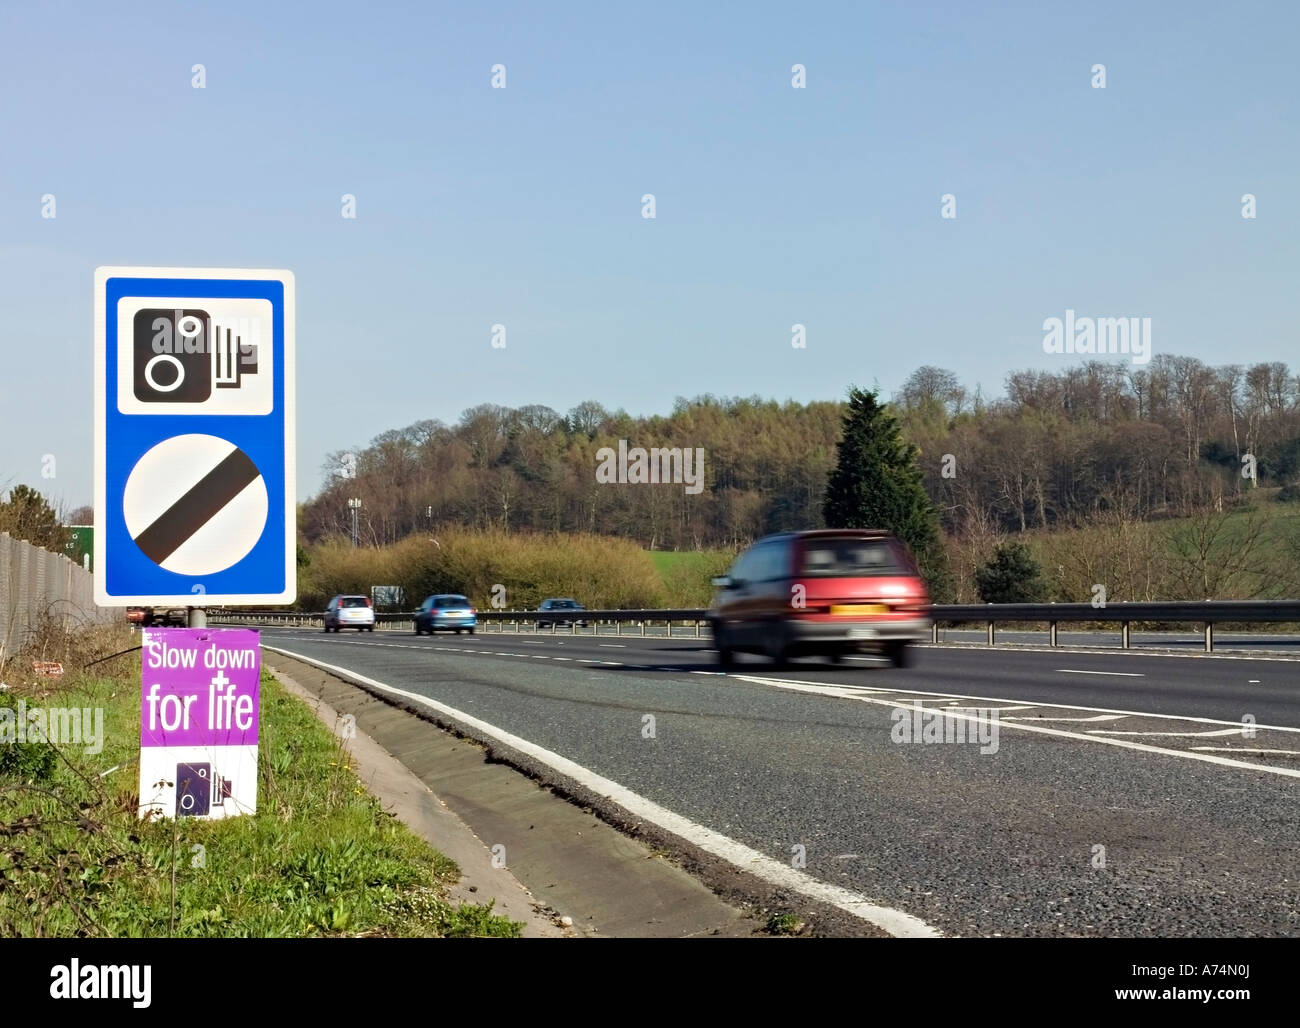 Speed Limit Sign 'Slow Down for Life'  on a British road. - Stock Image